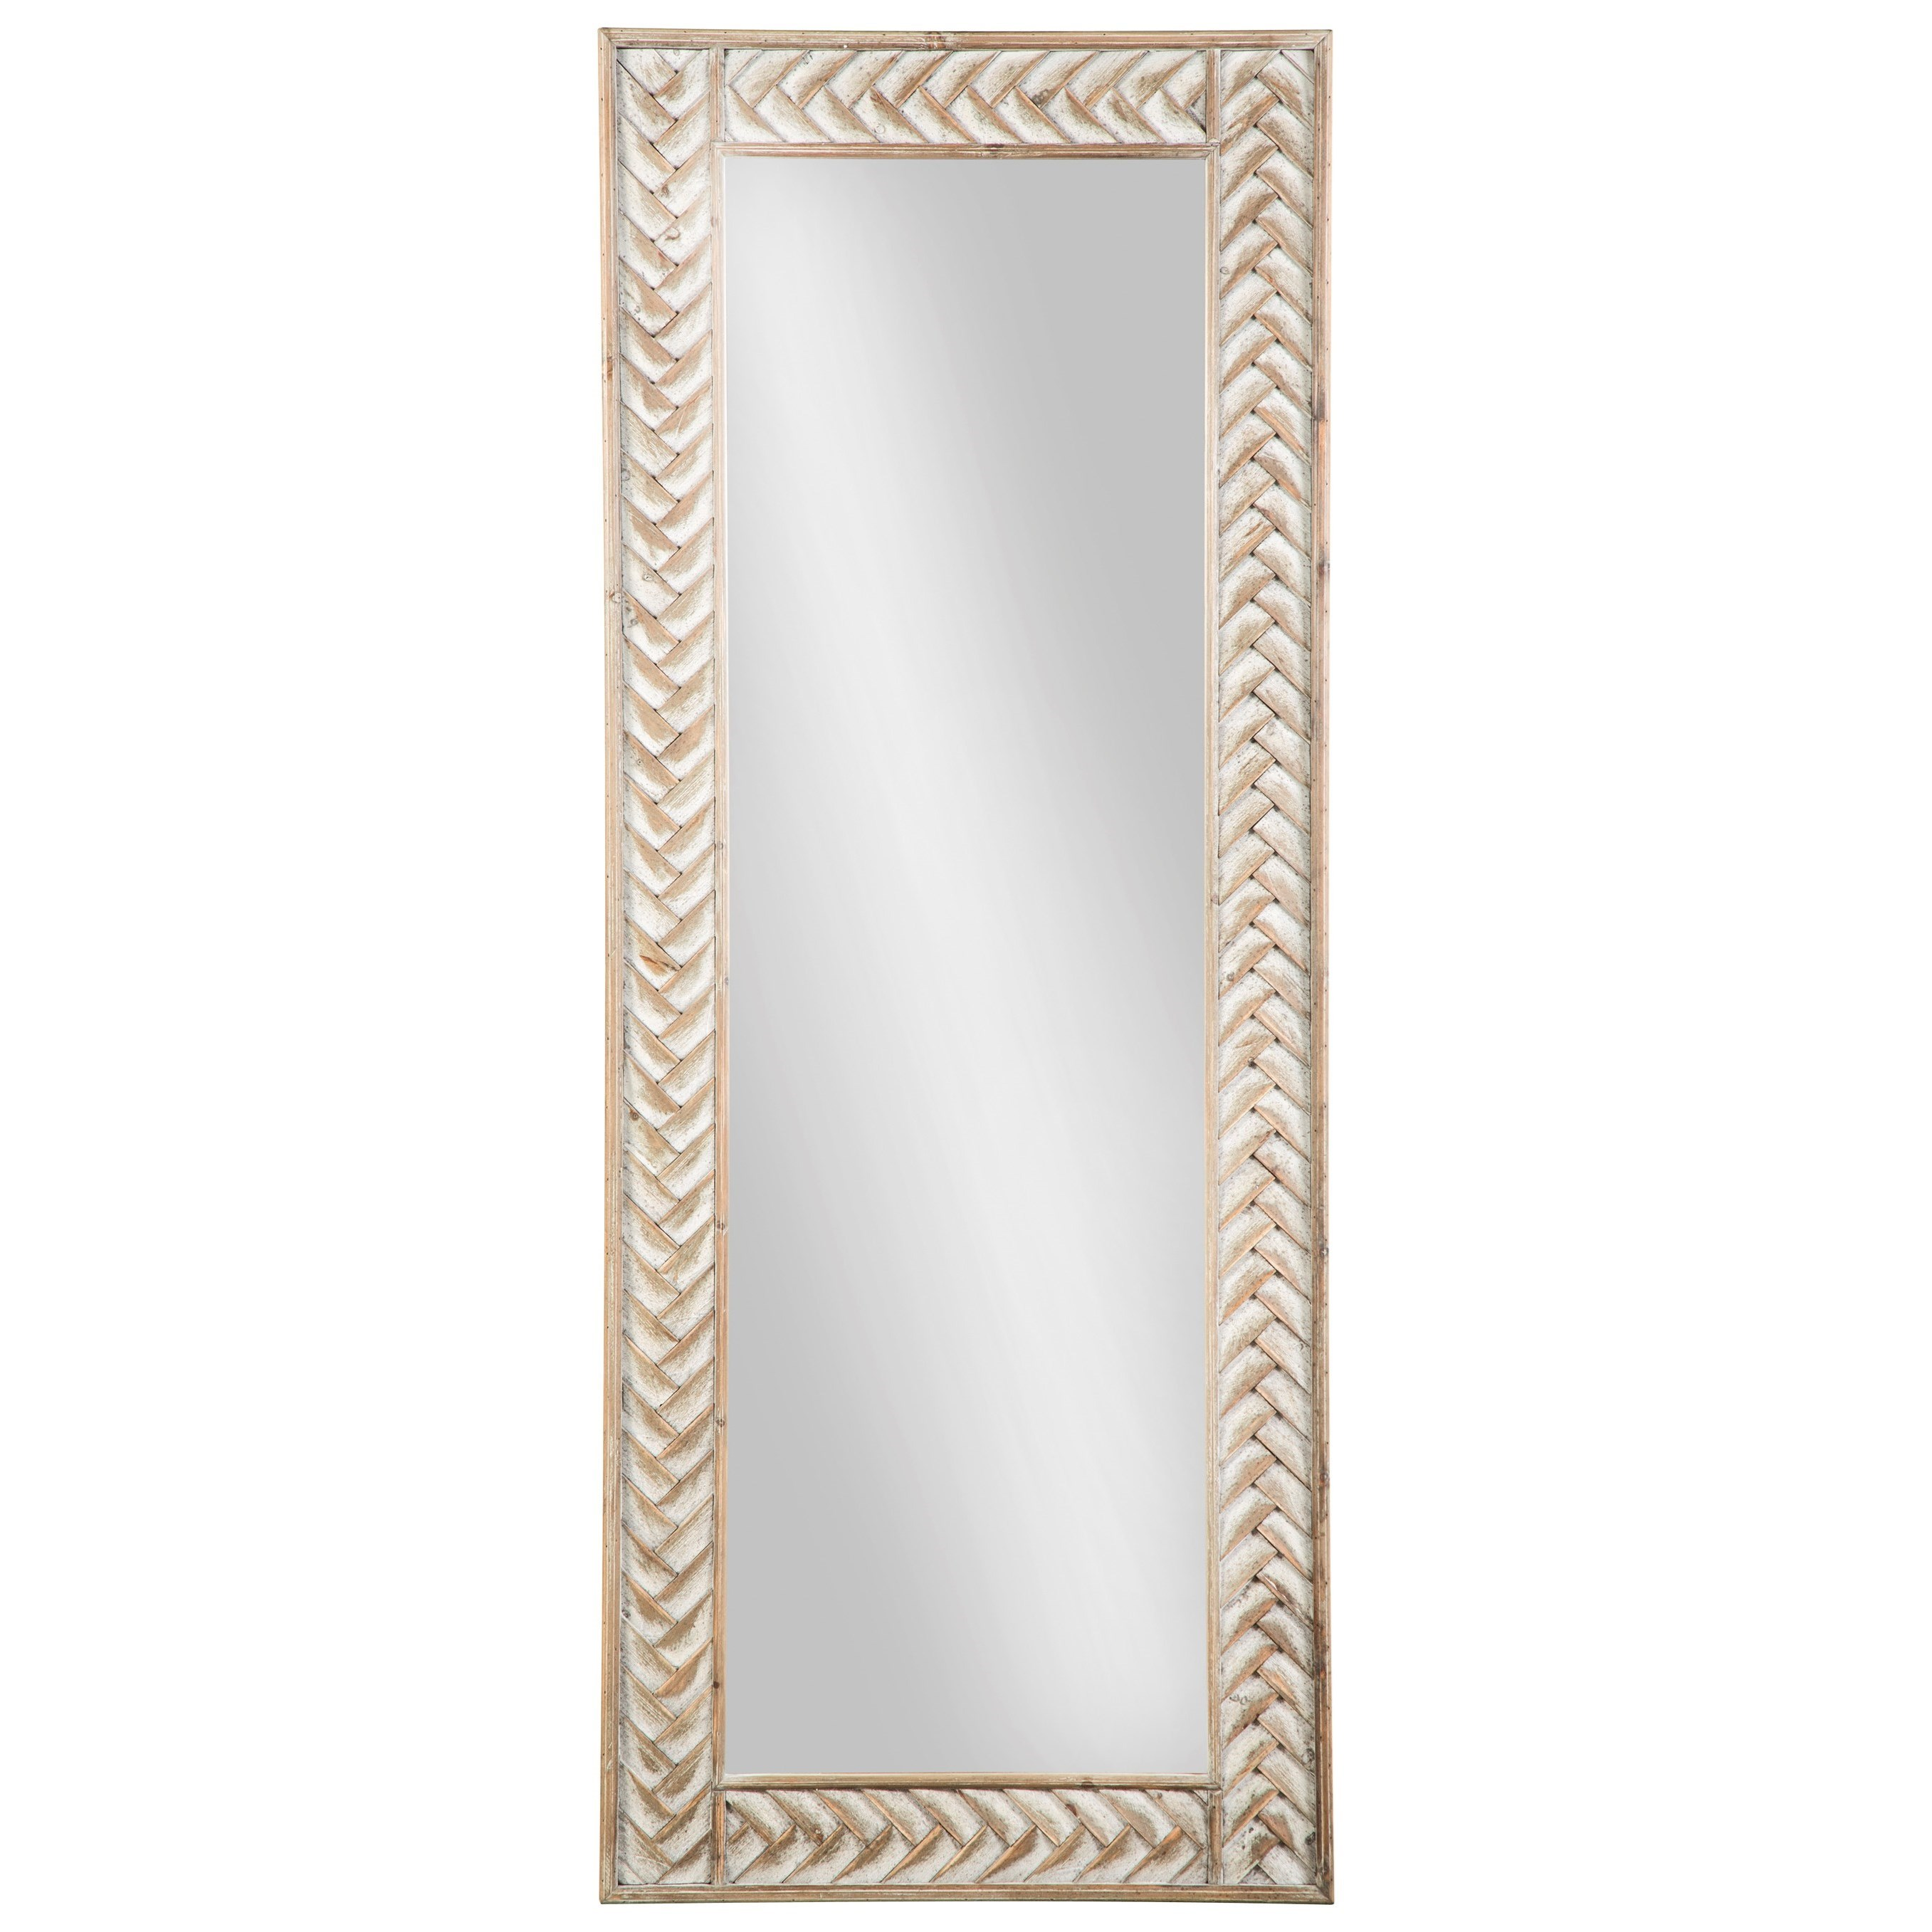 Signature design by ashley accent mirrors nash natural for Accent mirrors